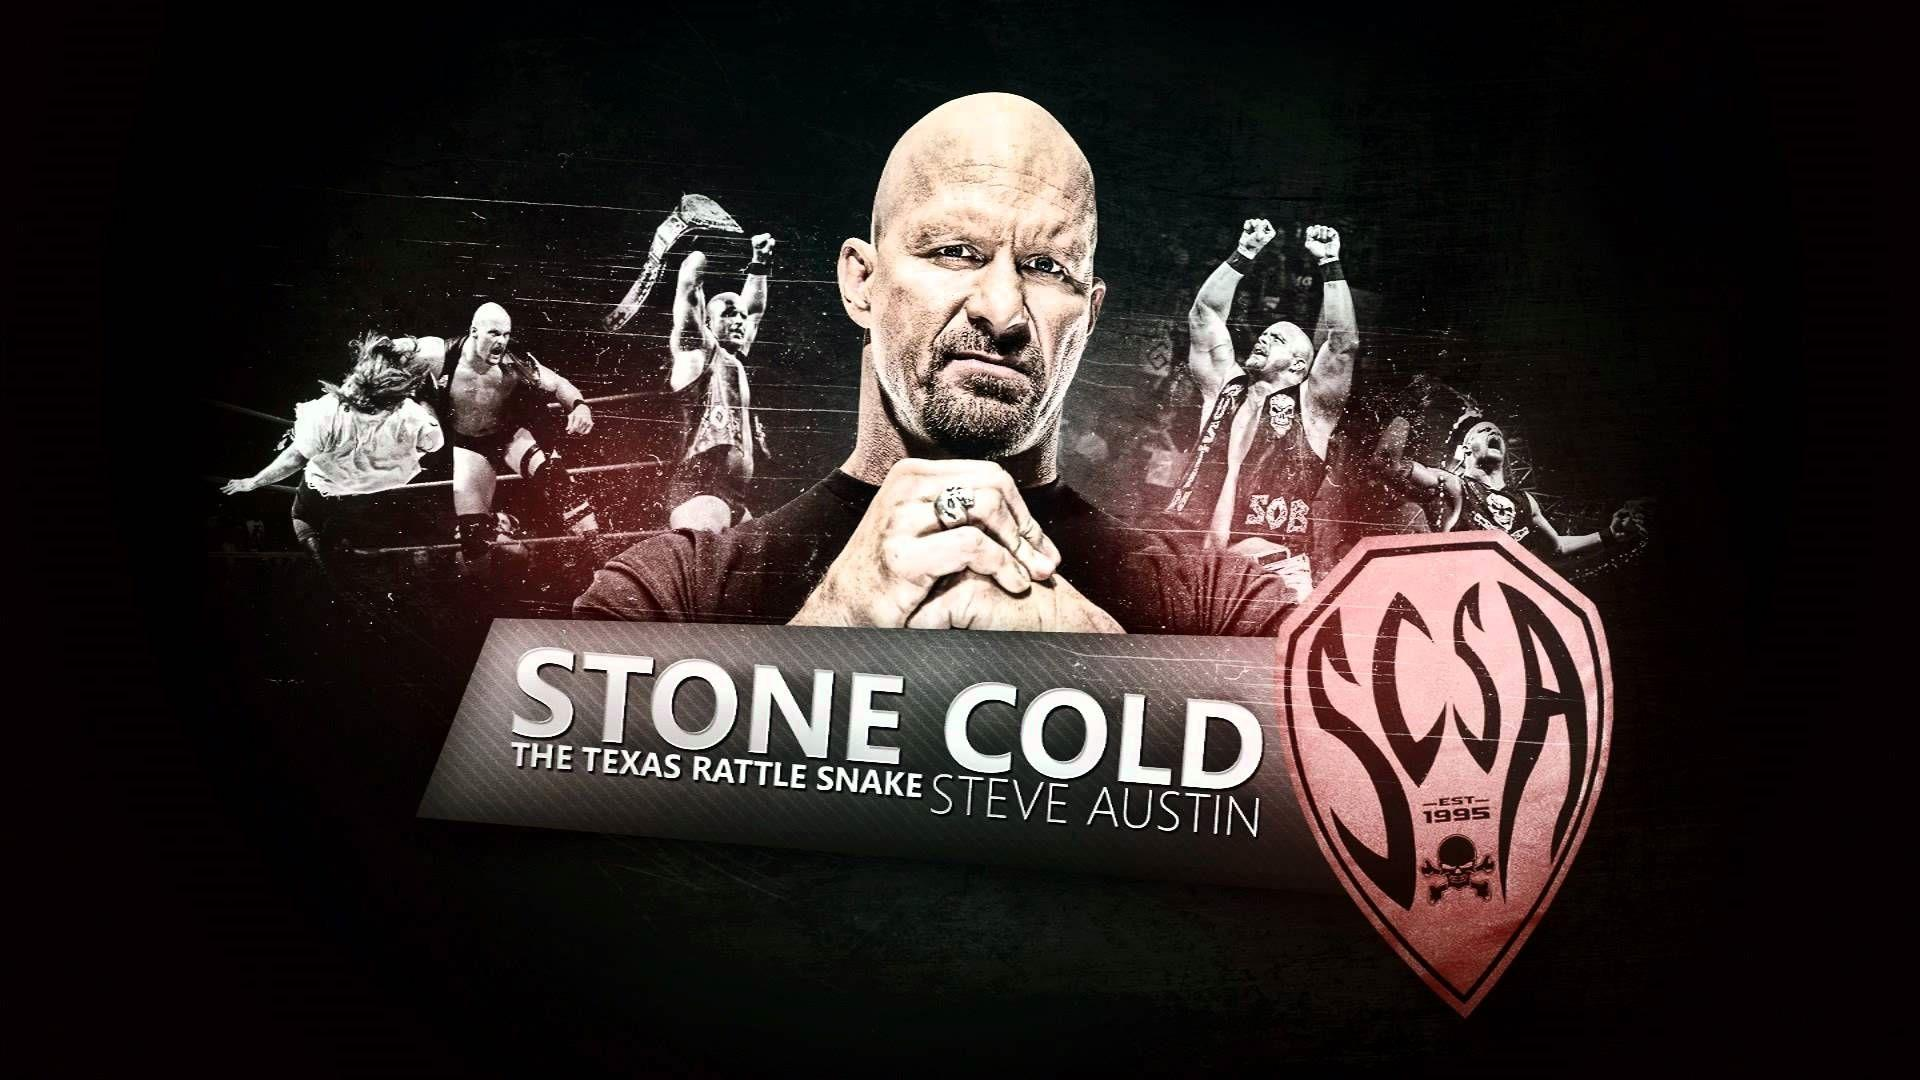 Stone Cold Steve Austin Wallpapers 1920x1080